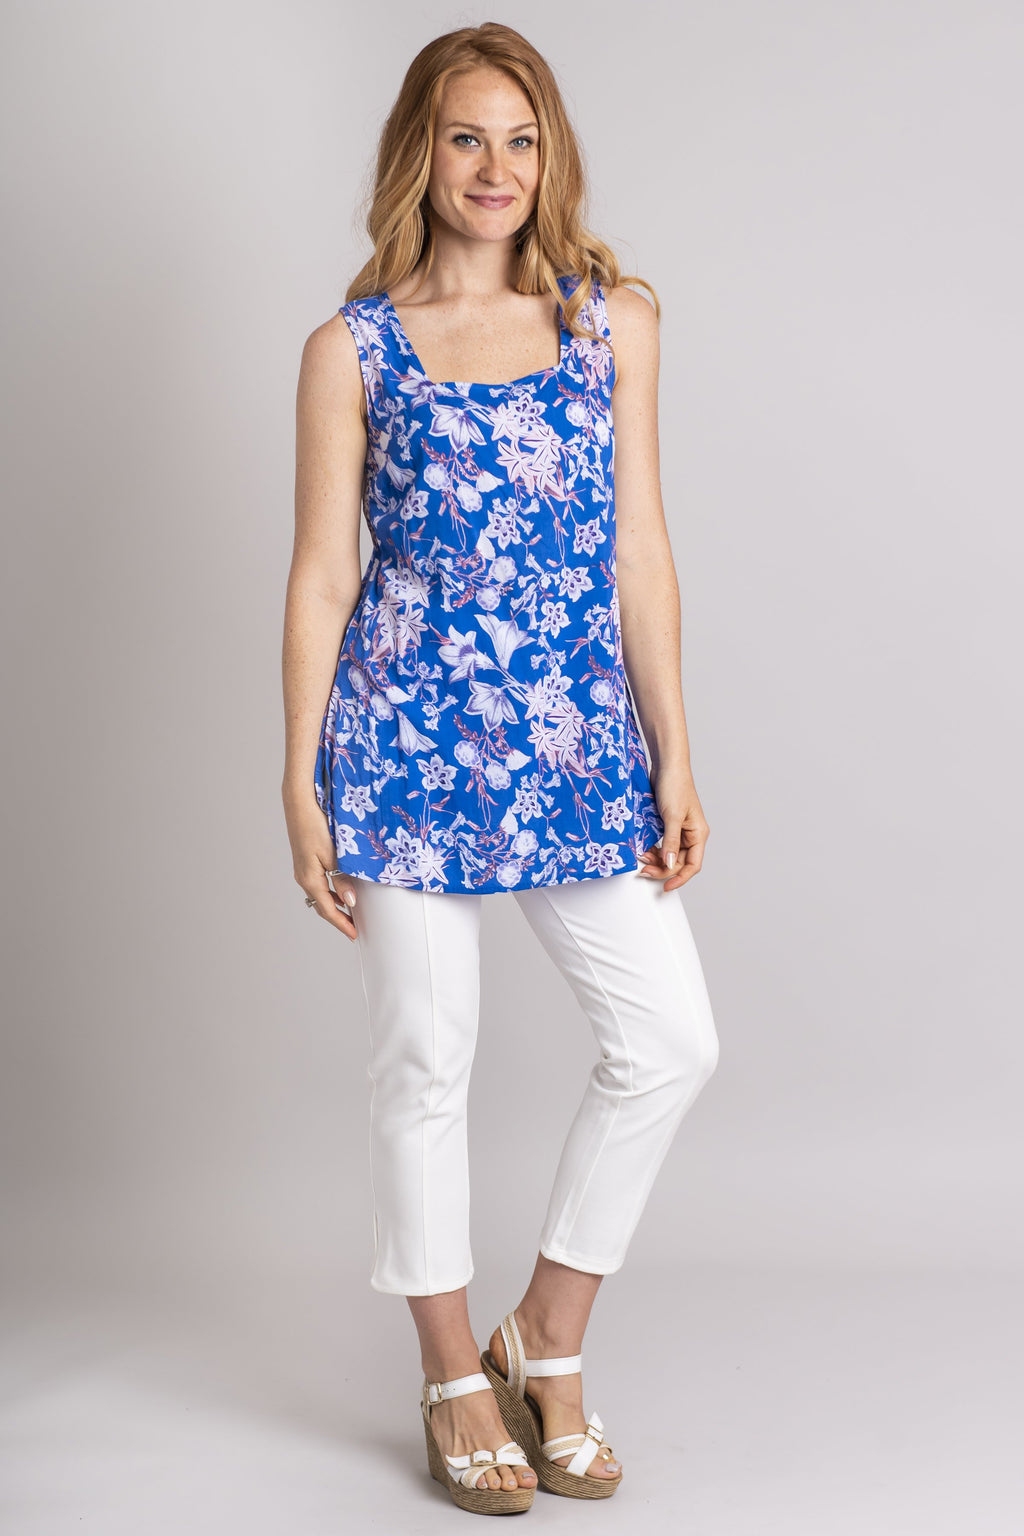 Oracle Tank, Blue Bellflowers, Batik Art - Blue Sky Clothing Co